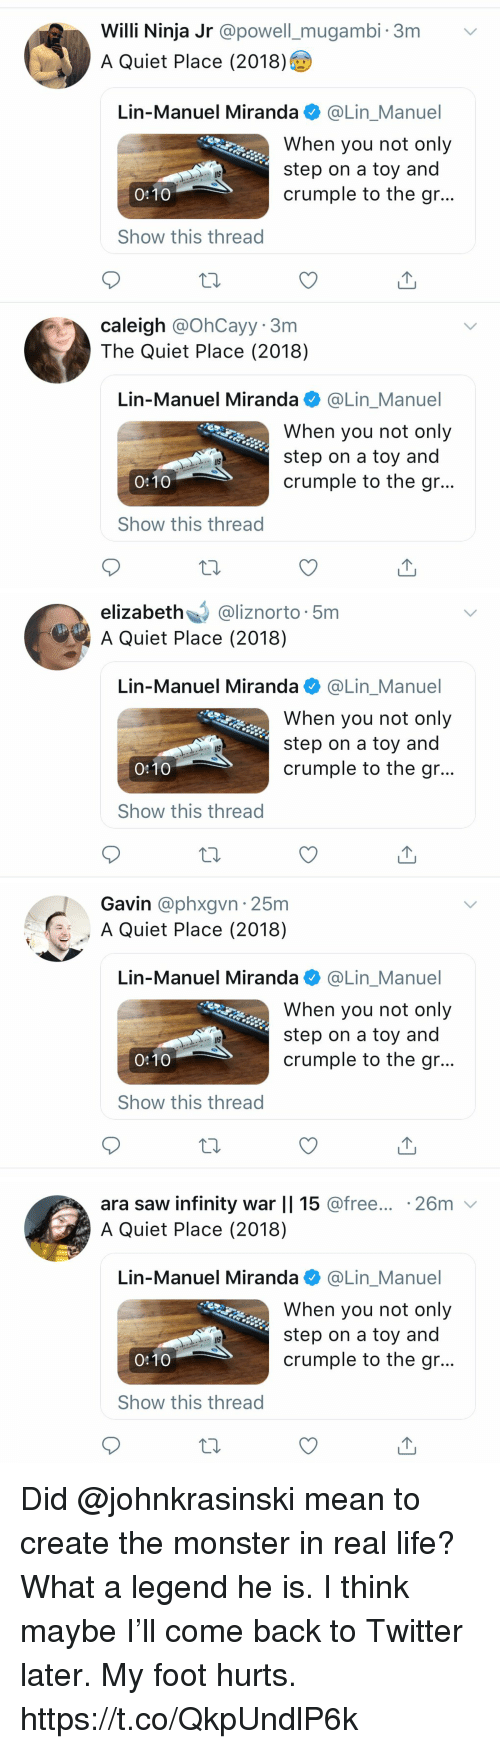 gavin: Willi Ninja Jr @powell_mugambi. 3m v  A Quiet Place (2018)  Lin-Manuel Miranda @Lin_Manuel  When you not only  step on a toy and  crumple to the gr..  US  0:10  Show this thread  caleigh @OhCayy. 3m  The Quiet Place (2018)  Lin-Manuel Miranda @Lin_Manuel  When you not only  step on a toy and  crumple to the gr...  US  0:10  Show this thread   elizabeth@liznorto 5m  A Quiet Place (2018)  Lin-Manuel Miranda e》 @Lin.Manuel  When you not only  step on a toy and  crumple to the gr...  US  0:10  Show this thread   Gavin @phxgvn 25m  A Quiet Place (2018)  Lin-Manuel Miranda@Lin_Manuel  When you not only  step on a toy and  crumple to the gr..  US  0:10  Show this thread   ara saw infinity war    15 @free... .26m v  A Quiet Place (2018)  Lin-Manuel Miranda @Lin_Manuel  When you not only  step on a toy and  crumple to the gr...  US  0:10  Show this thread Did @johnkrasinski mean to create the monster in real life? What a legend he is.  I think maybe I'll come back to Twitter later. My foot hurts. https://t.co/QkpUndlP6k